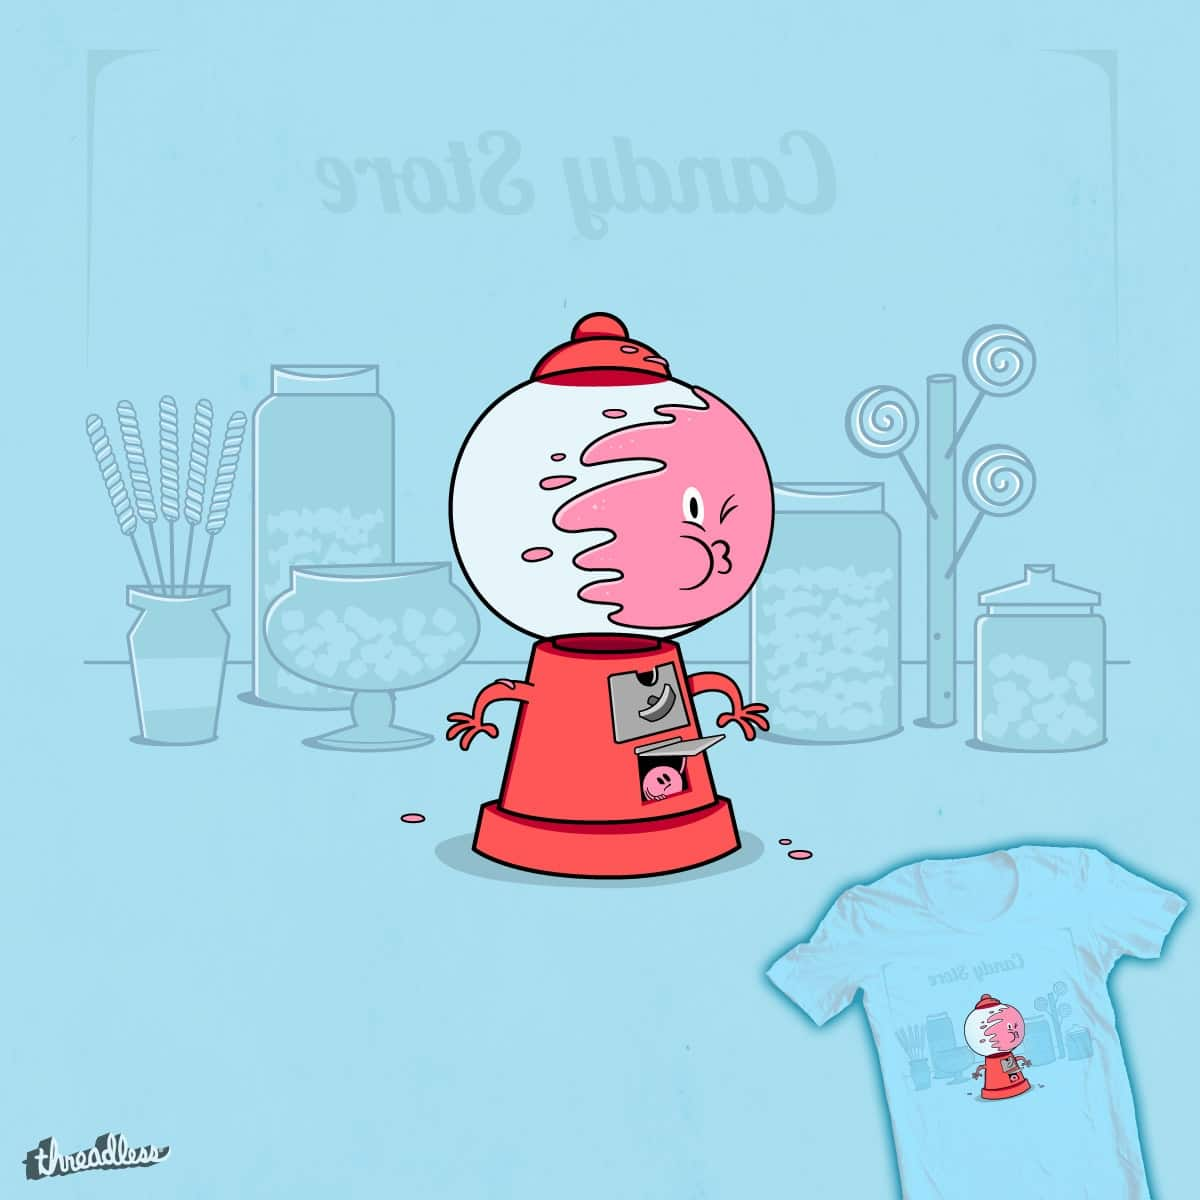 Bubble Trouble by FRICKINAWESOME and weird&co on Threadless